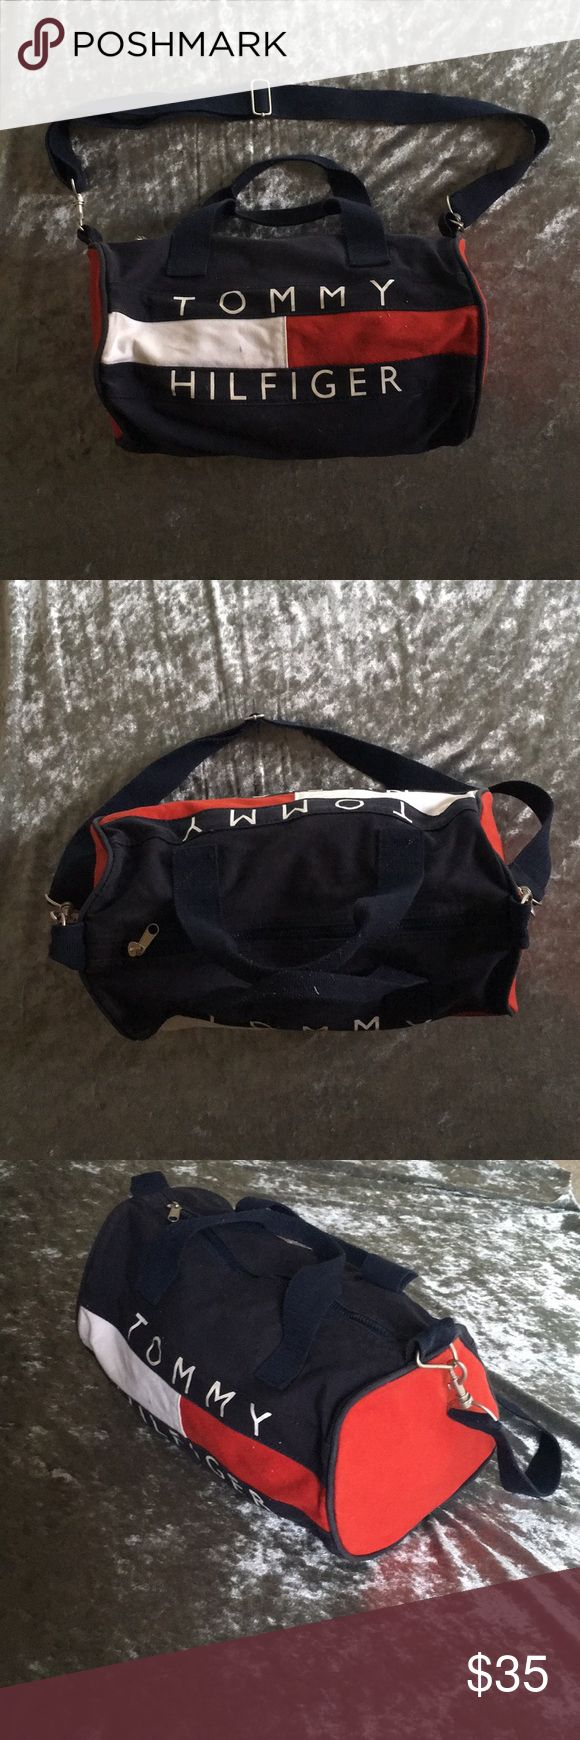 "Tommy Hilfiger duffel bag Small duffle bag. It has been used and washed. Mint condition but some signs of wear show.   Measurements: Length 14"" Height 9""  Width 8"" Tommy Hilfiger Bags Travel Bags"